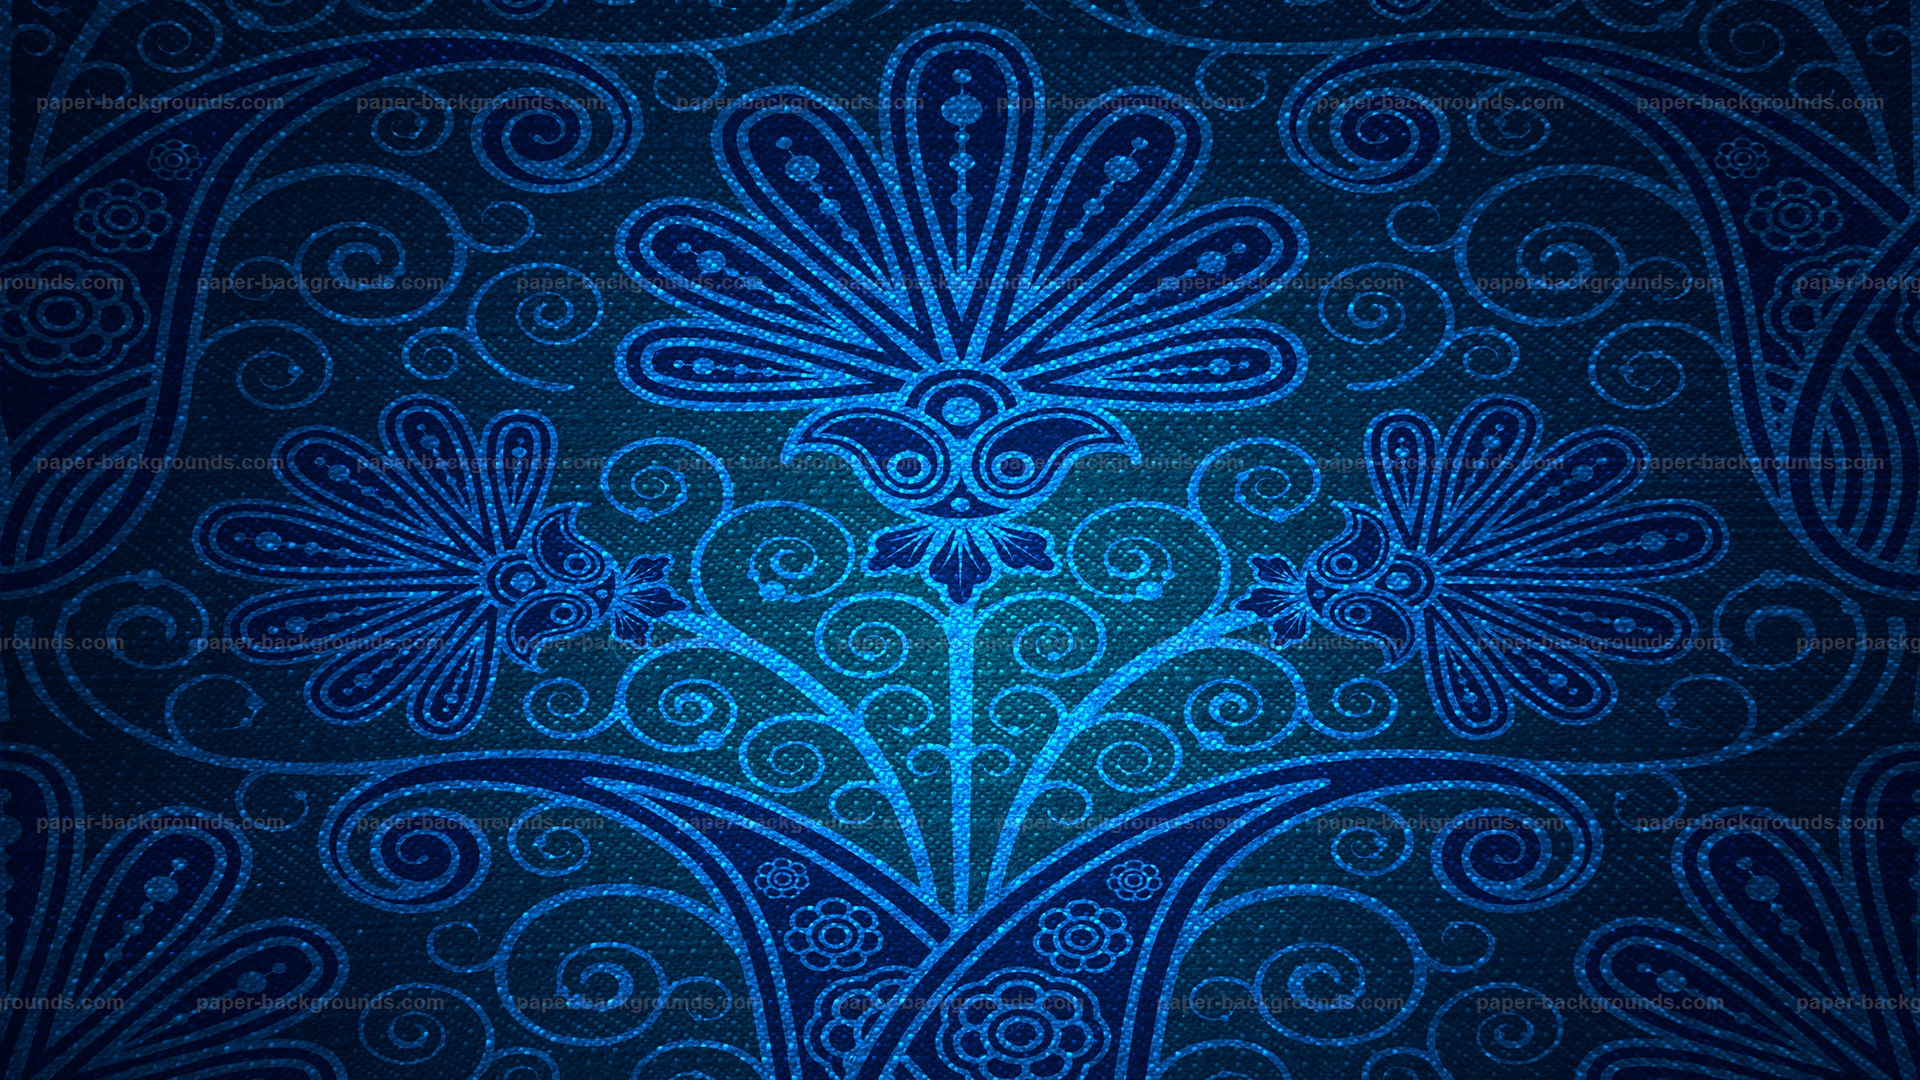 Paper Backgrounds | Damask Blue Backdrop Background Texture HD